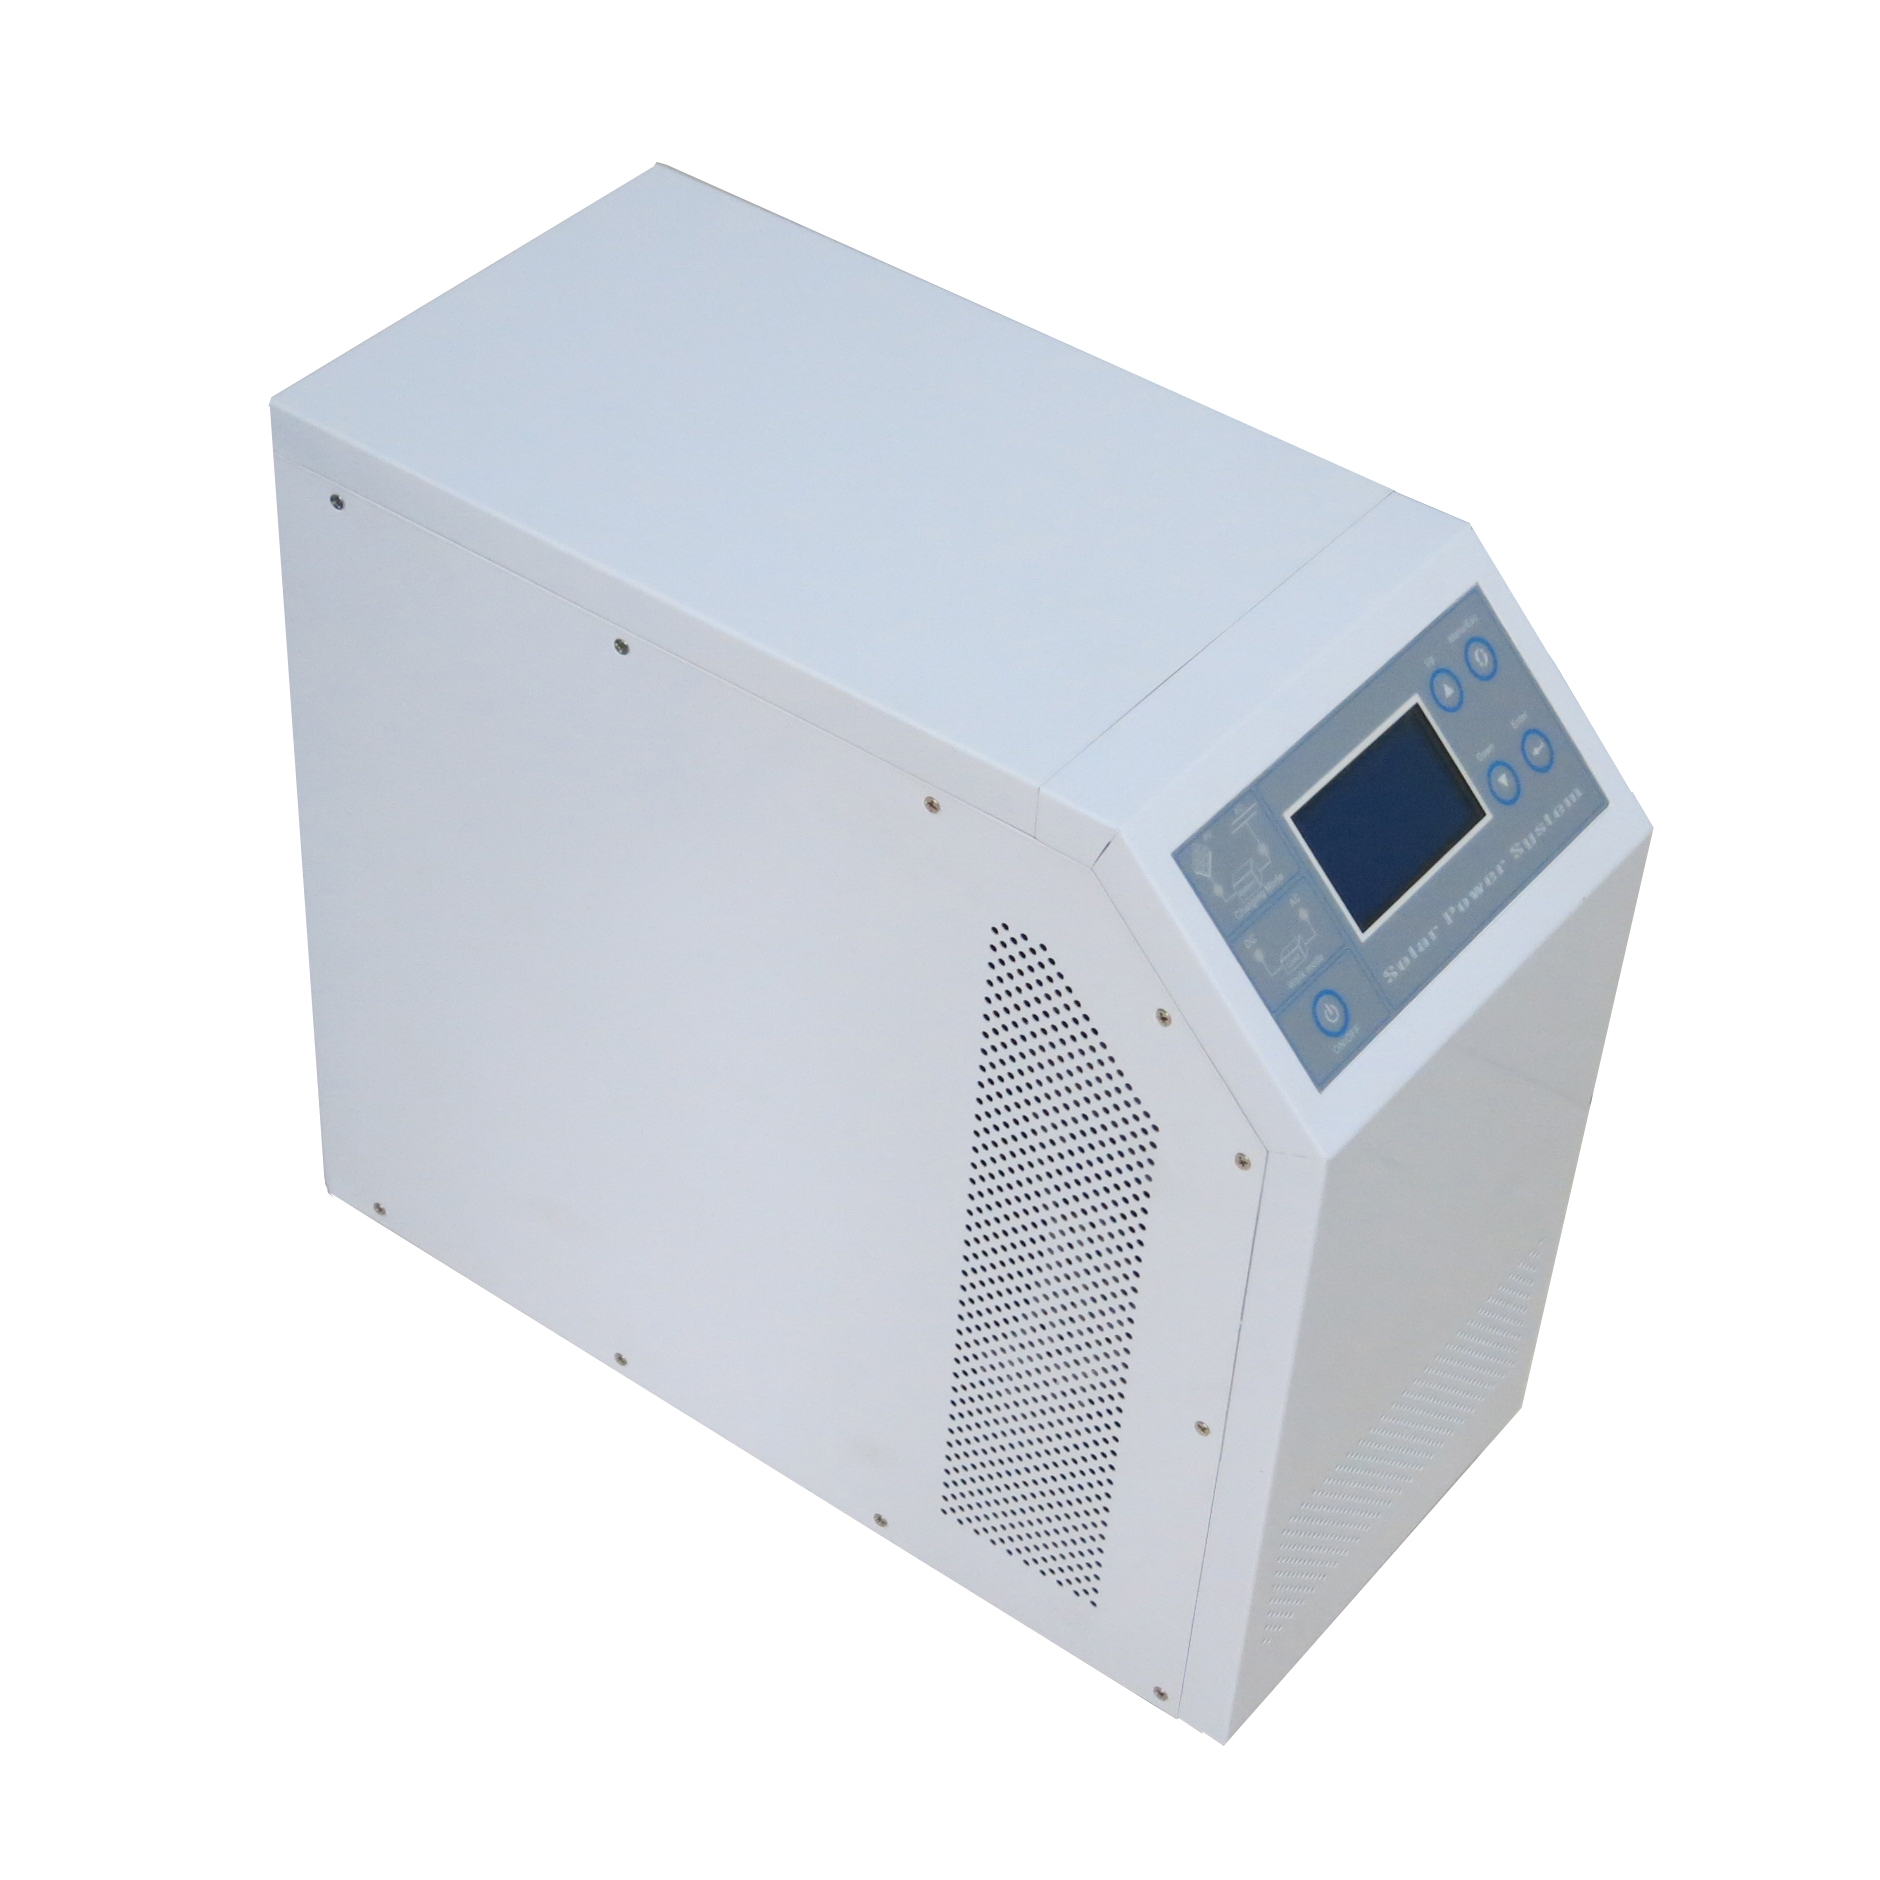 dc inverter Shop for dc to ac inverter at best buy find low everyday prices and buy online for delivery or in-store pick-up.